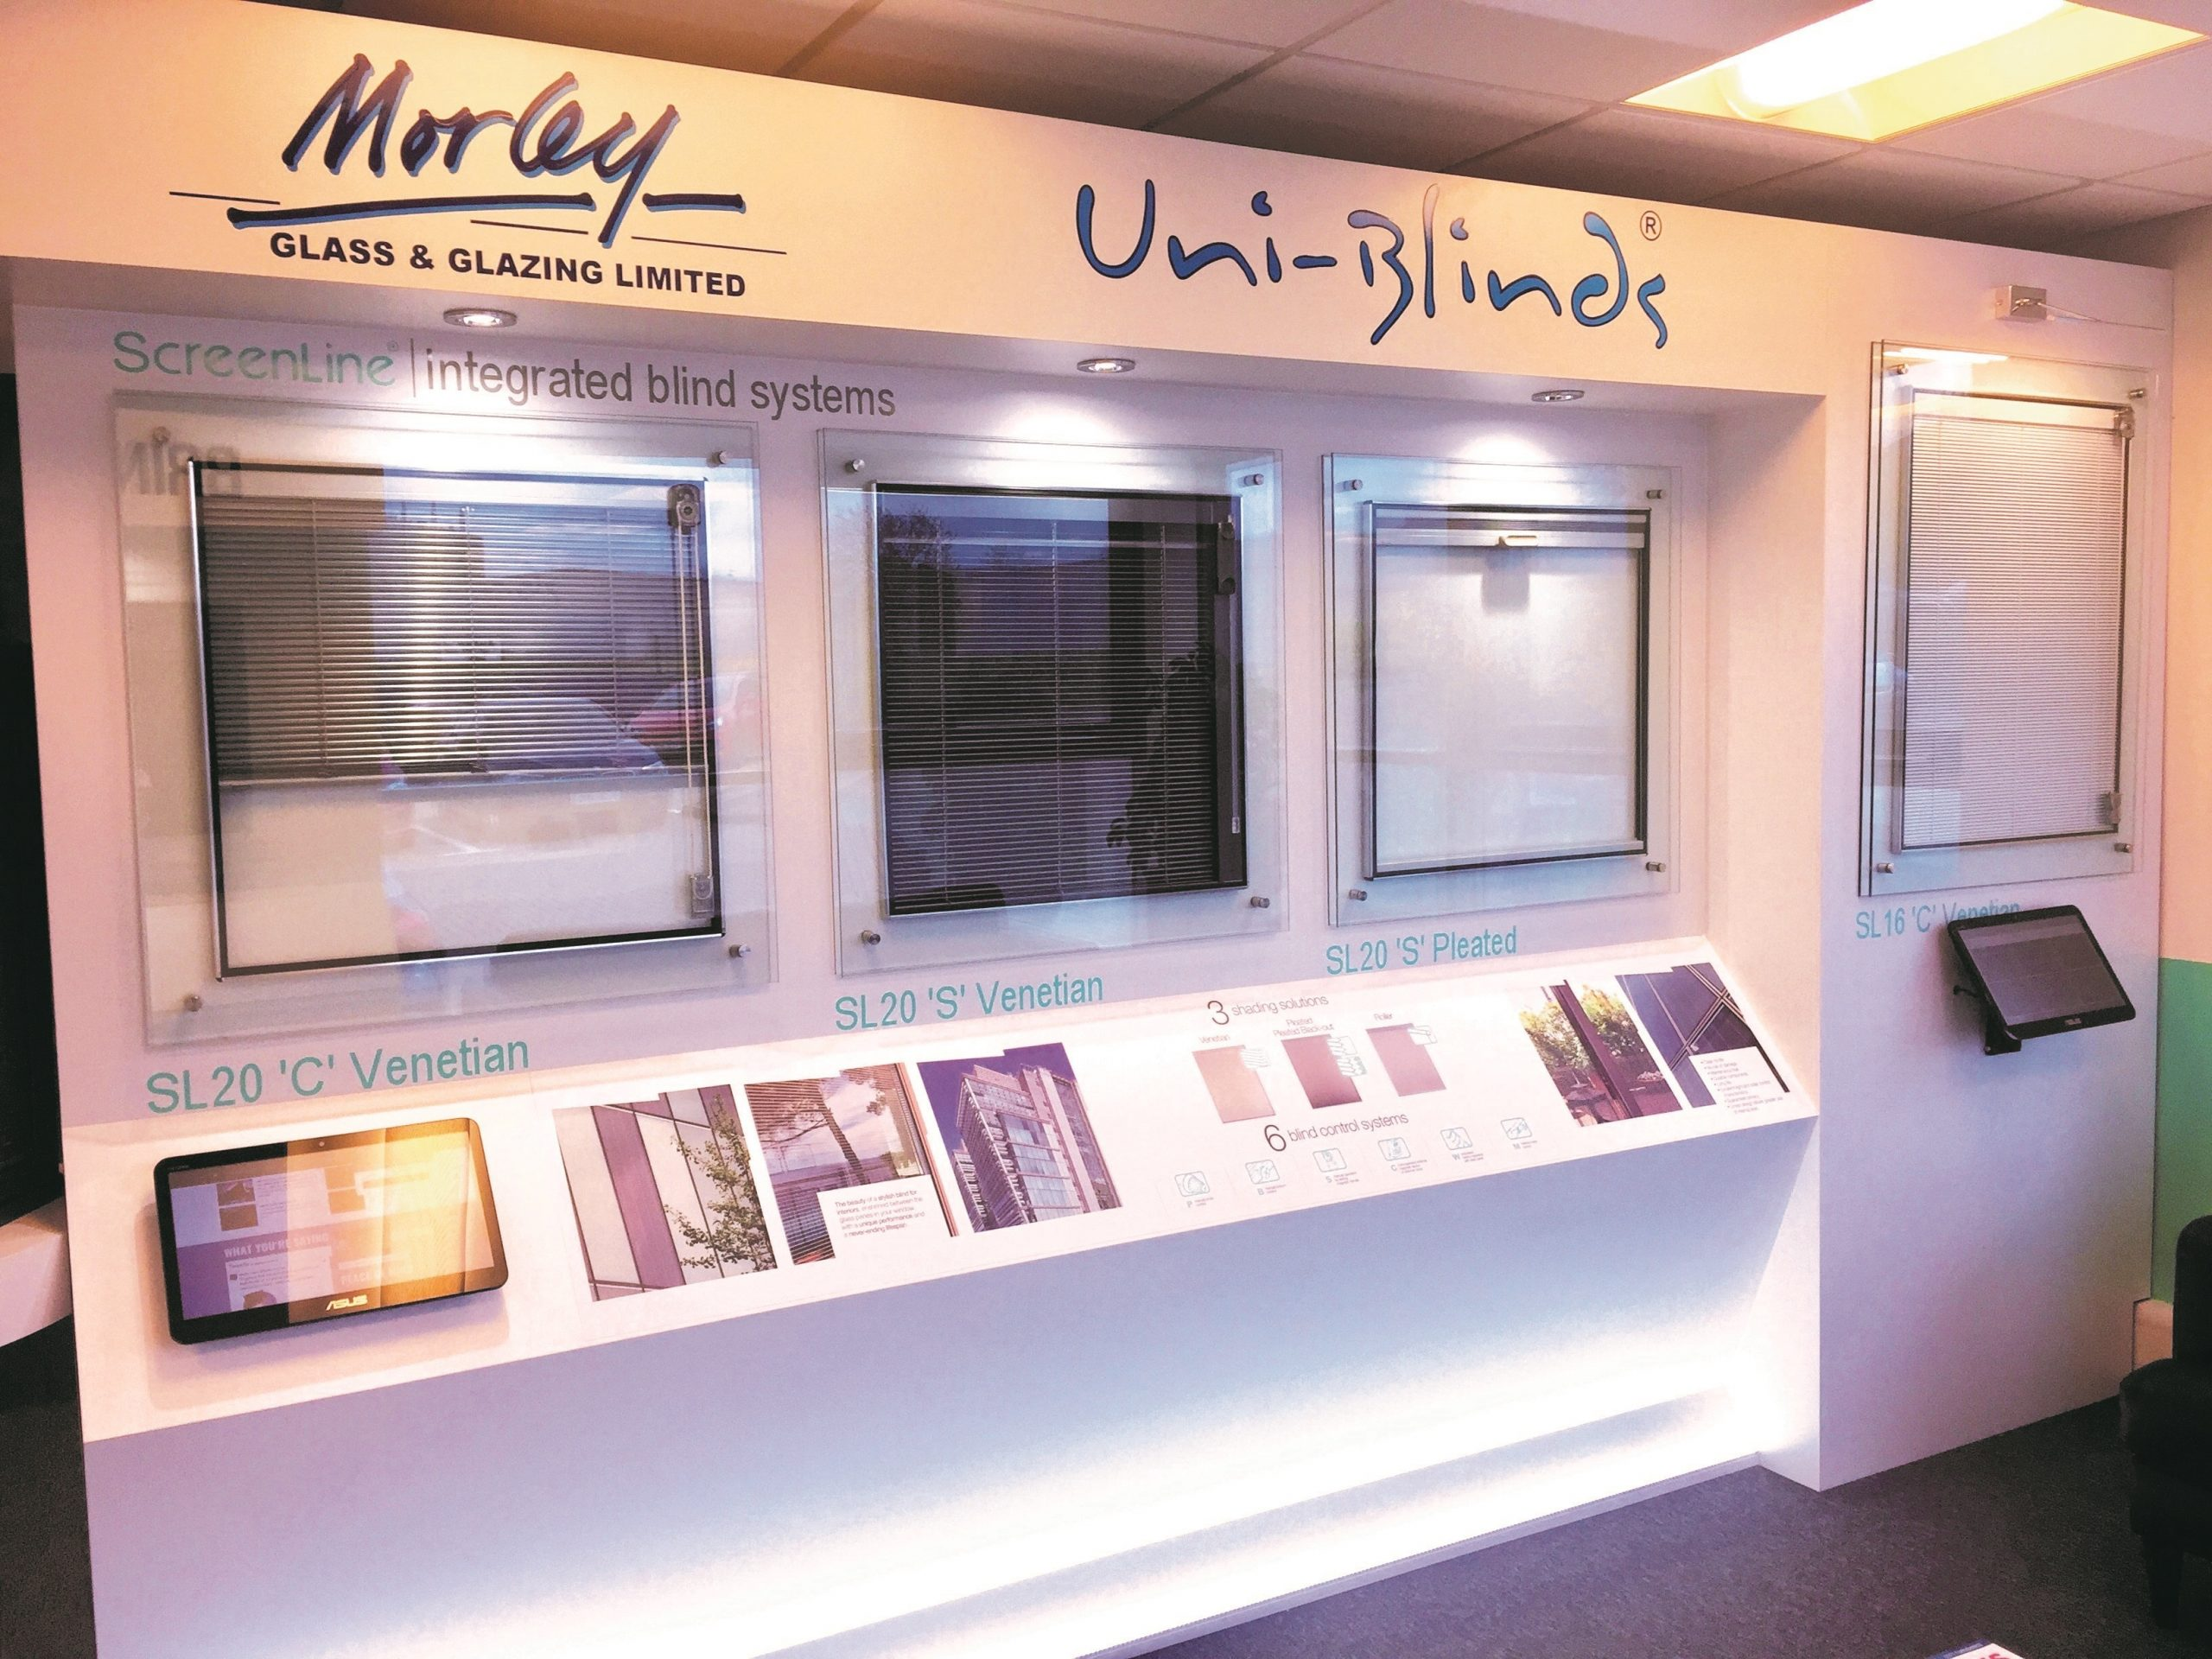 Morley Glass & Glazing gives away five free virtual showrooms to installers